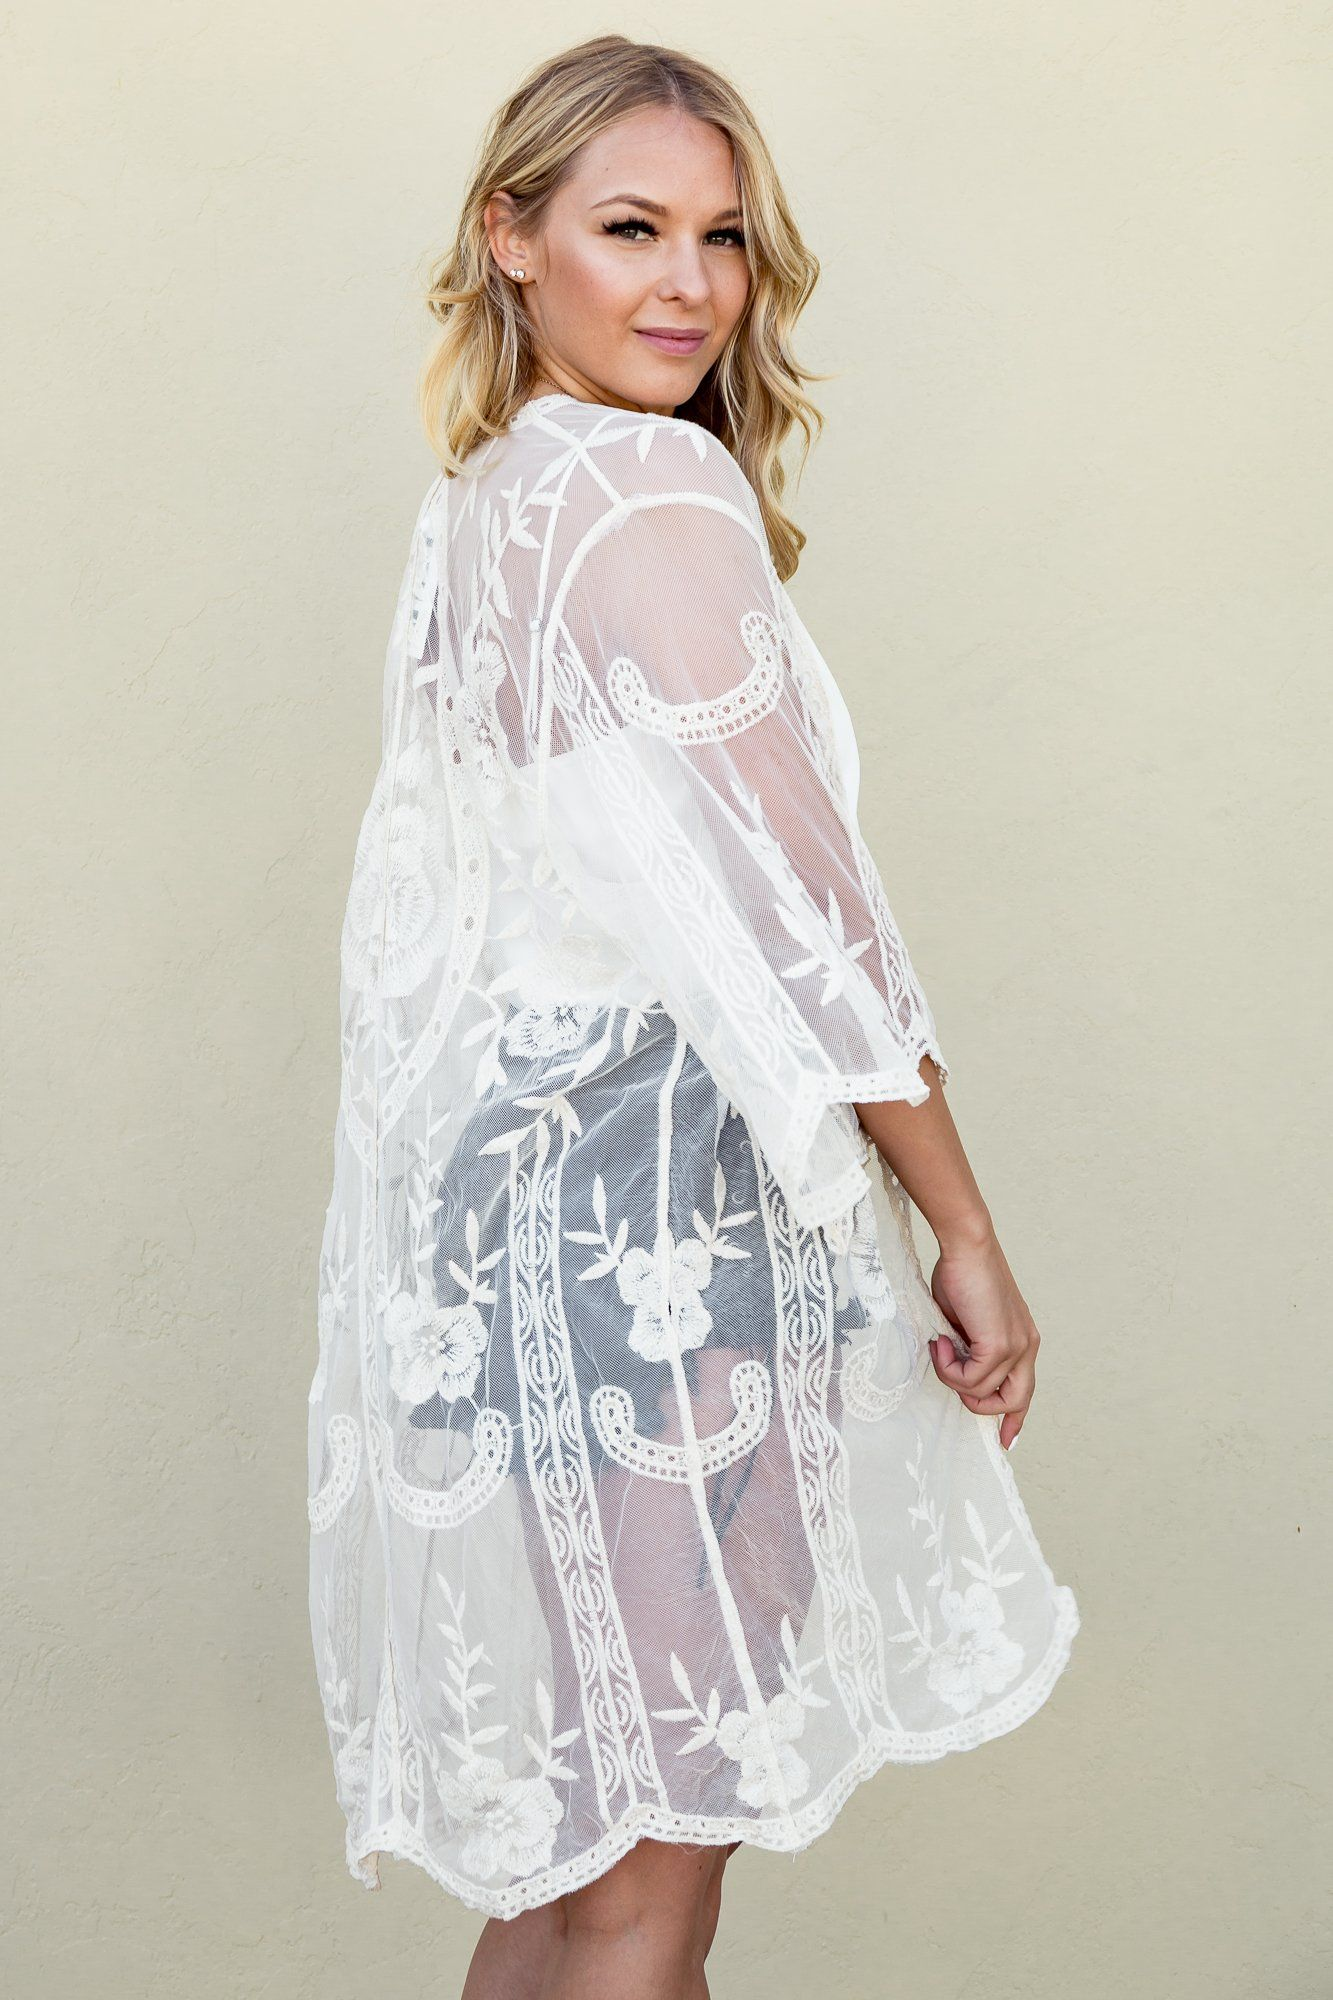 Cosmo Lace Kimono Fashion Pinterest Cosmos And Official T Shirt Beaconcream